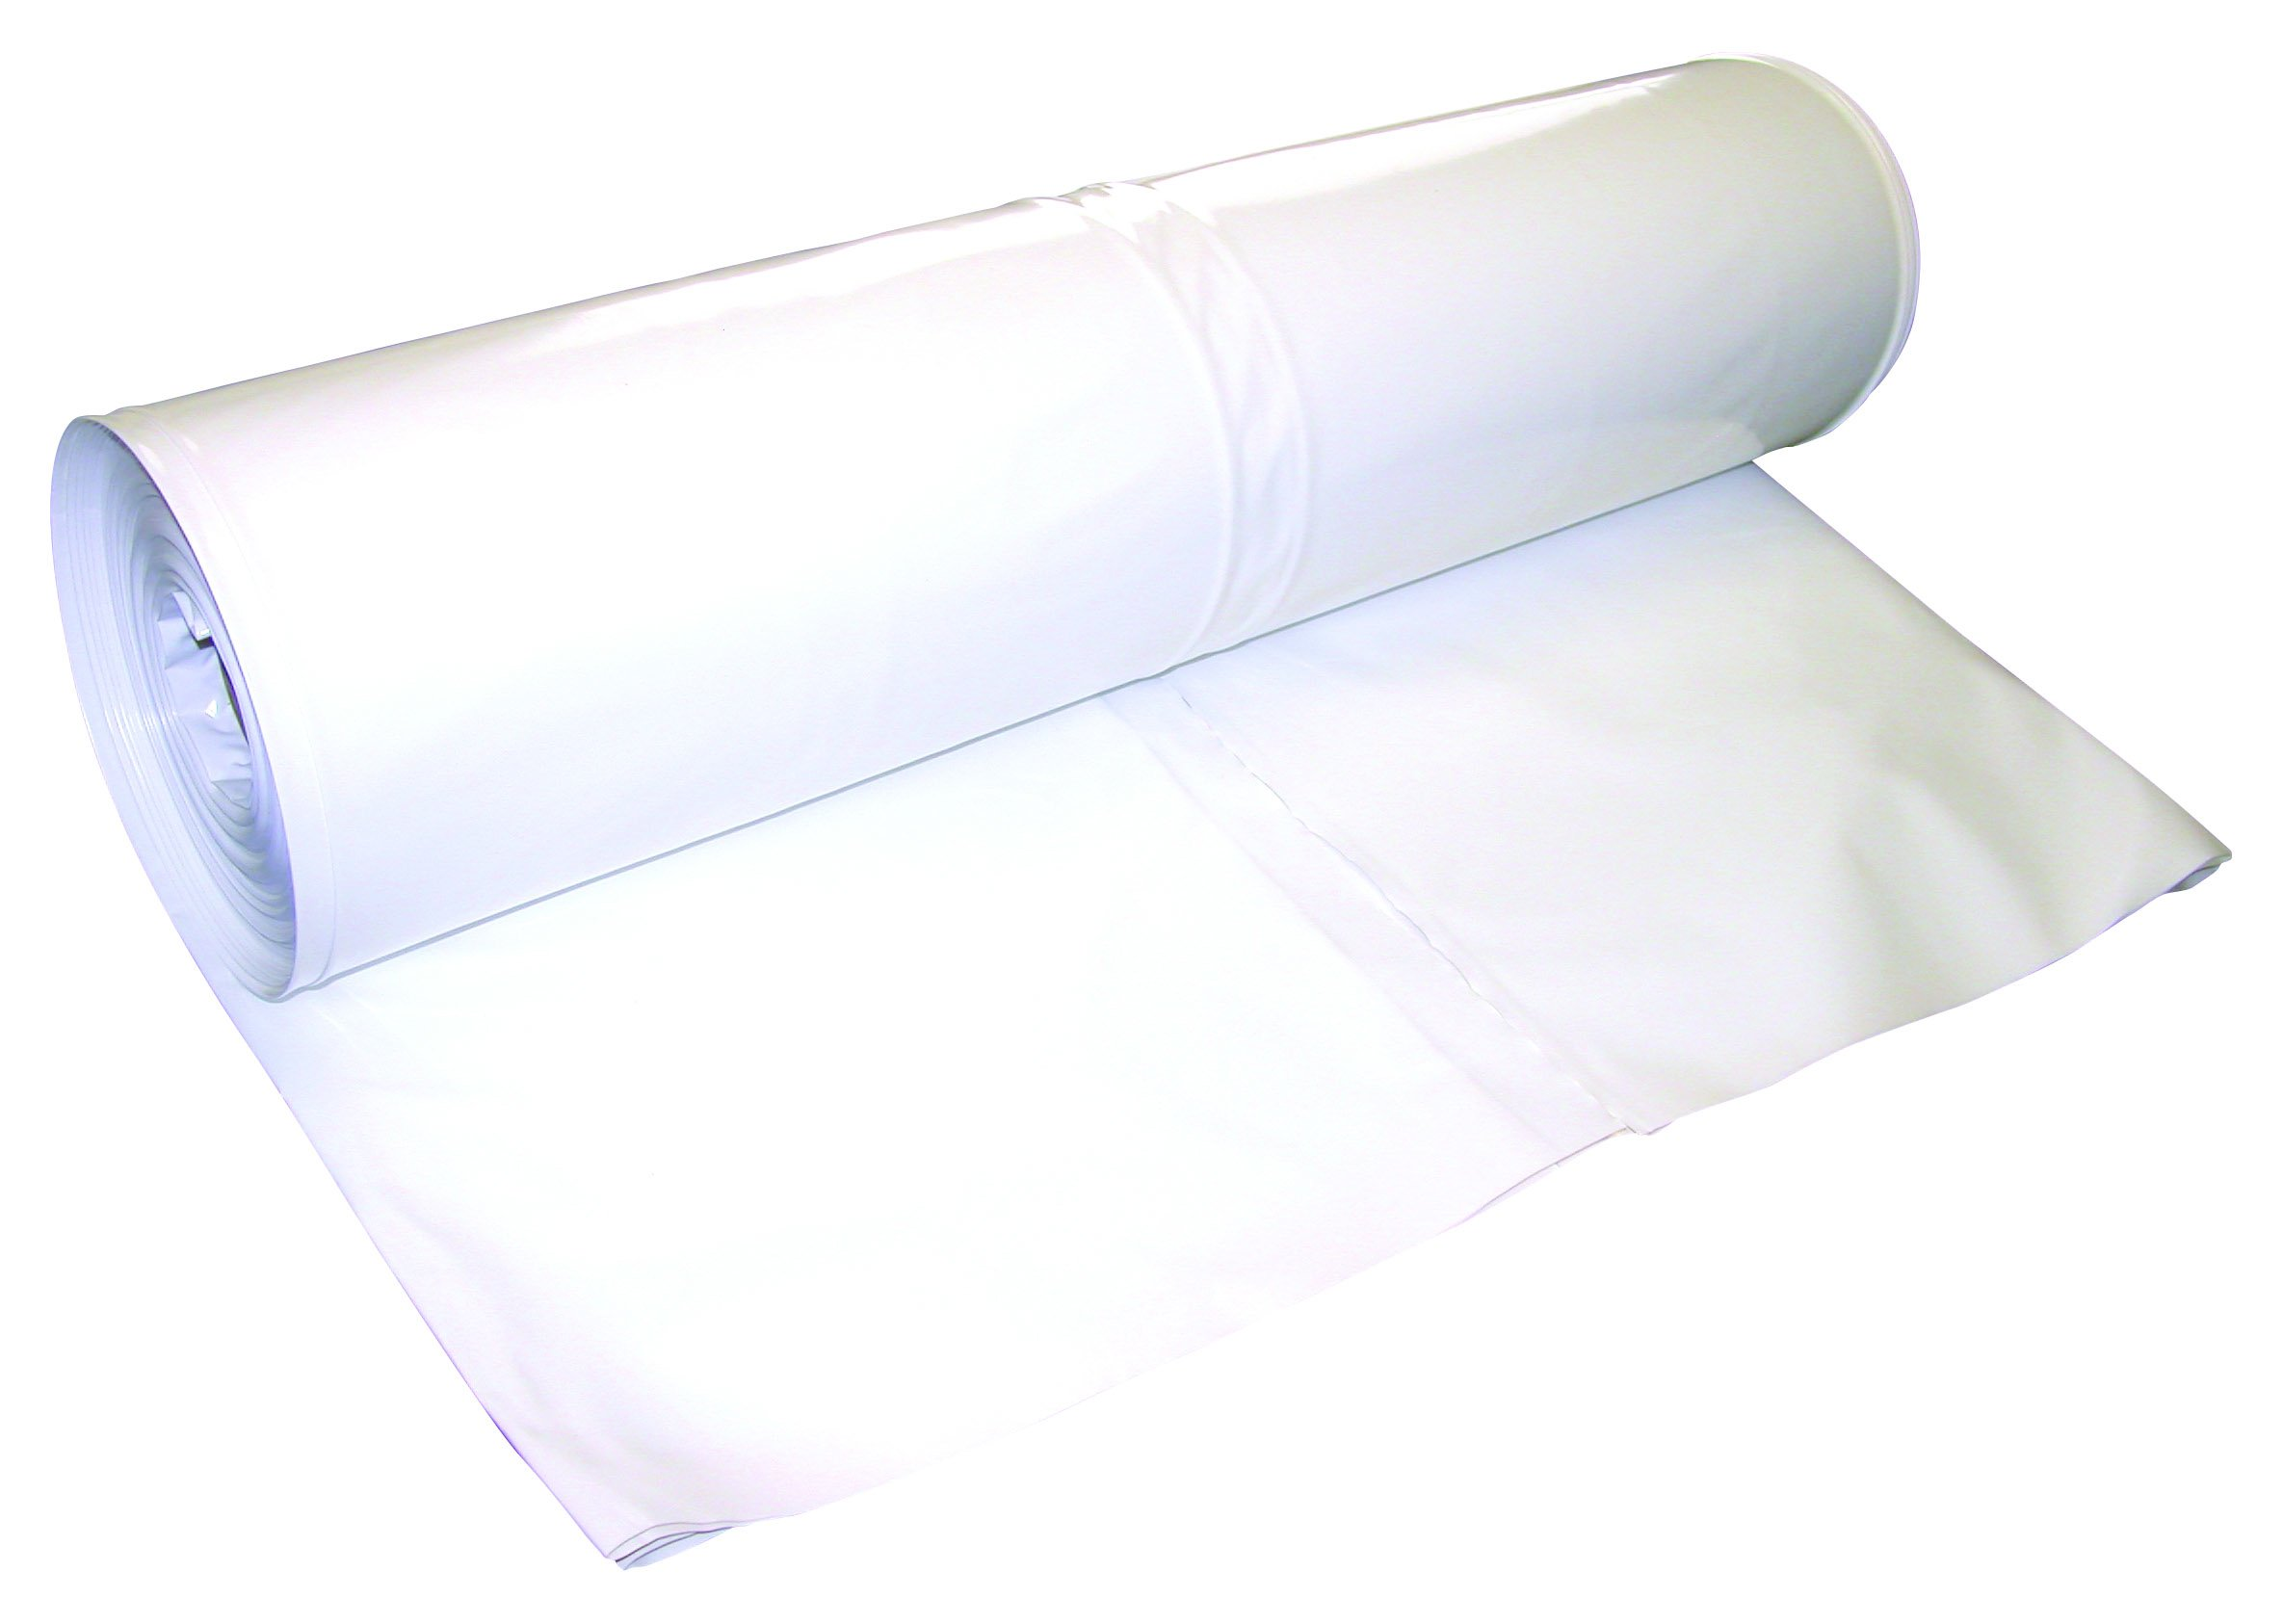 Dr. Shrink 26' x 100' 8 Mil, White Shrink Wrap DS-268100W